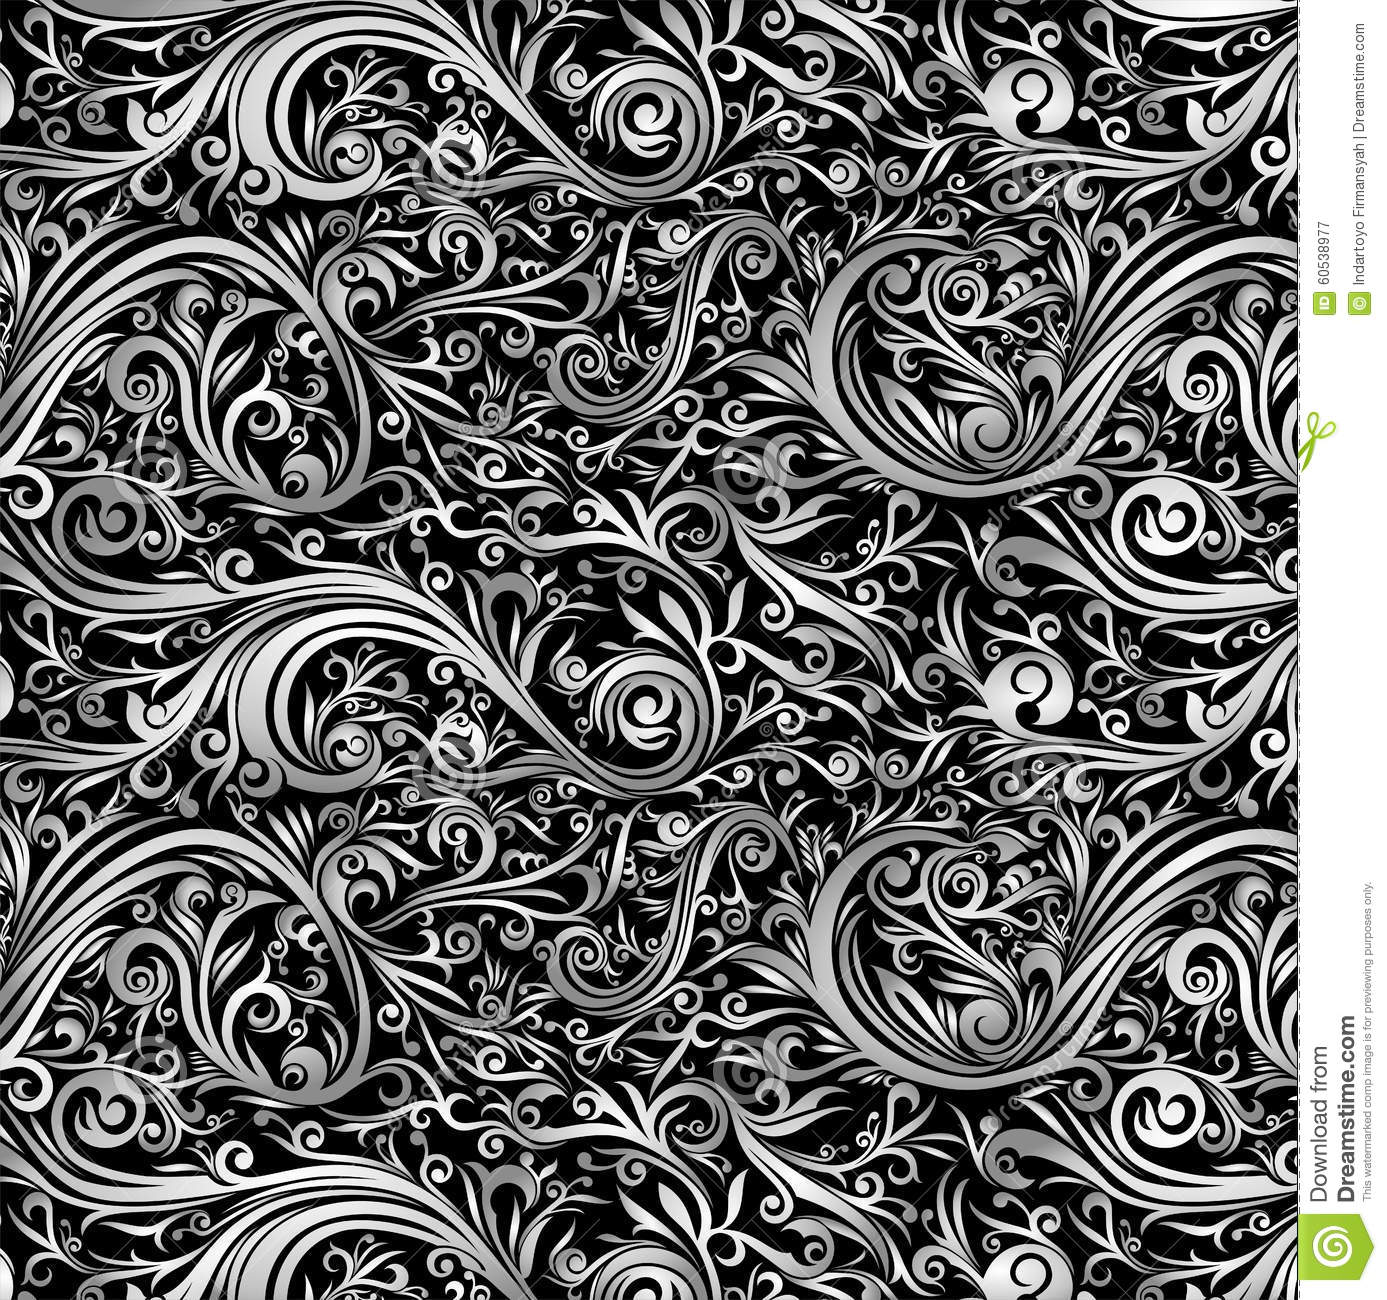 Wallpaper Abstract Batik Black White Swirl Stock Image Image Of